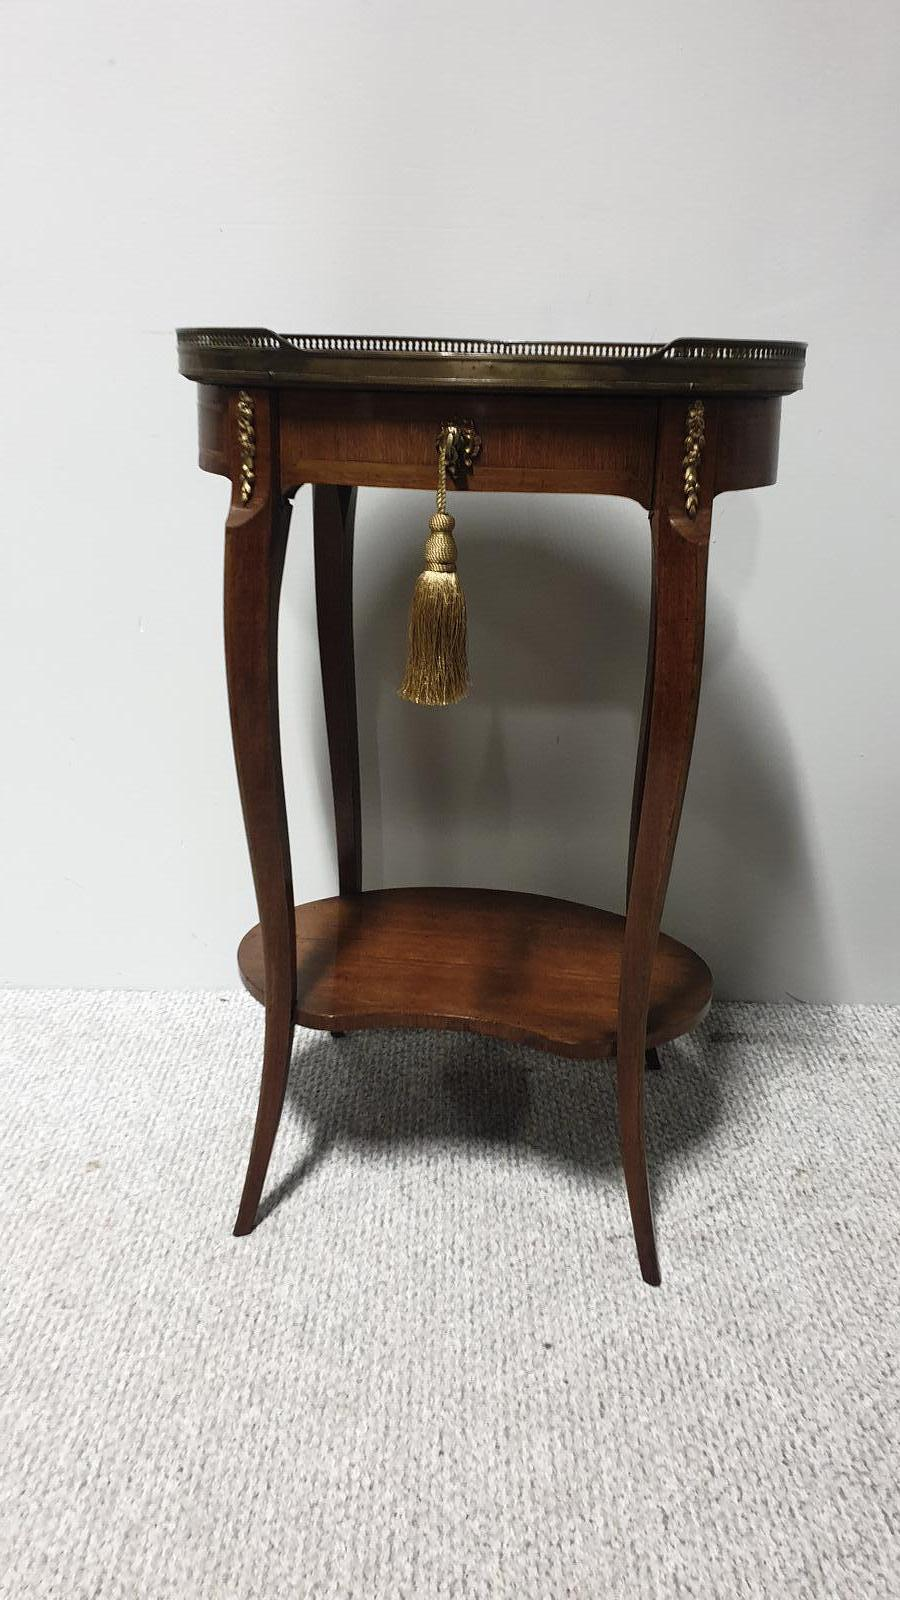 Very Nice French Walnut Side Lamp Table (1 of 1)